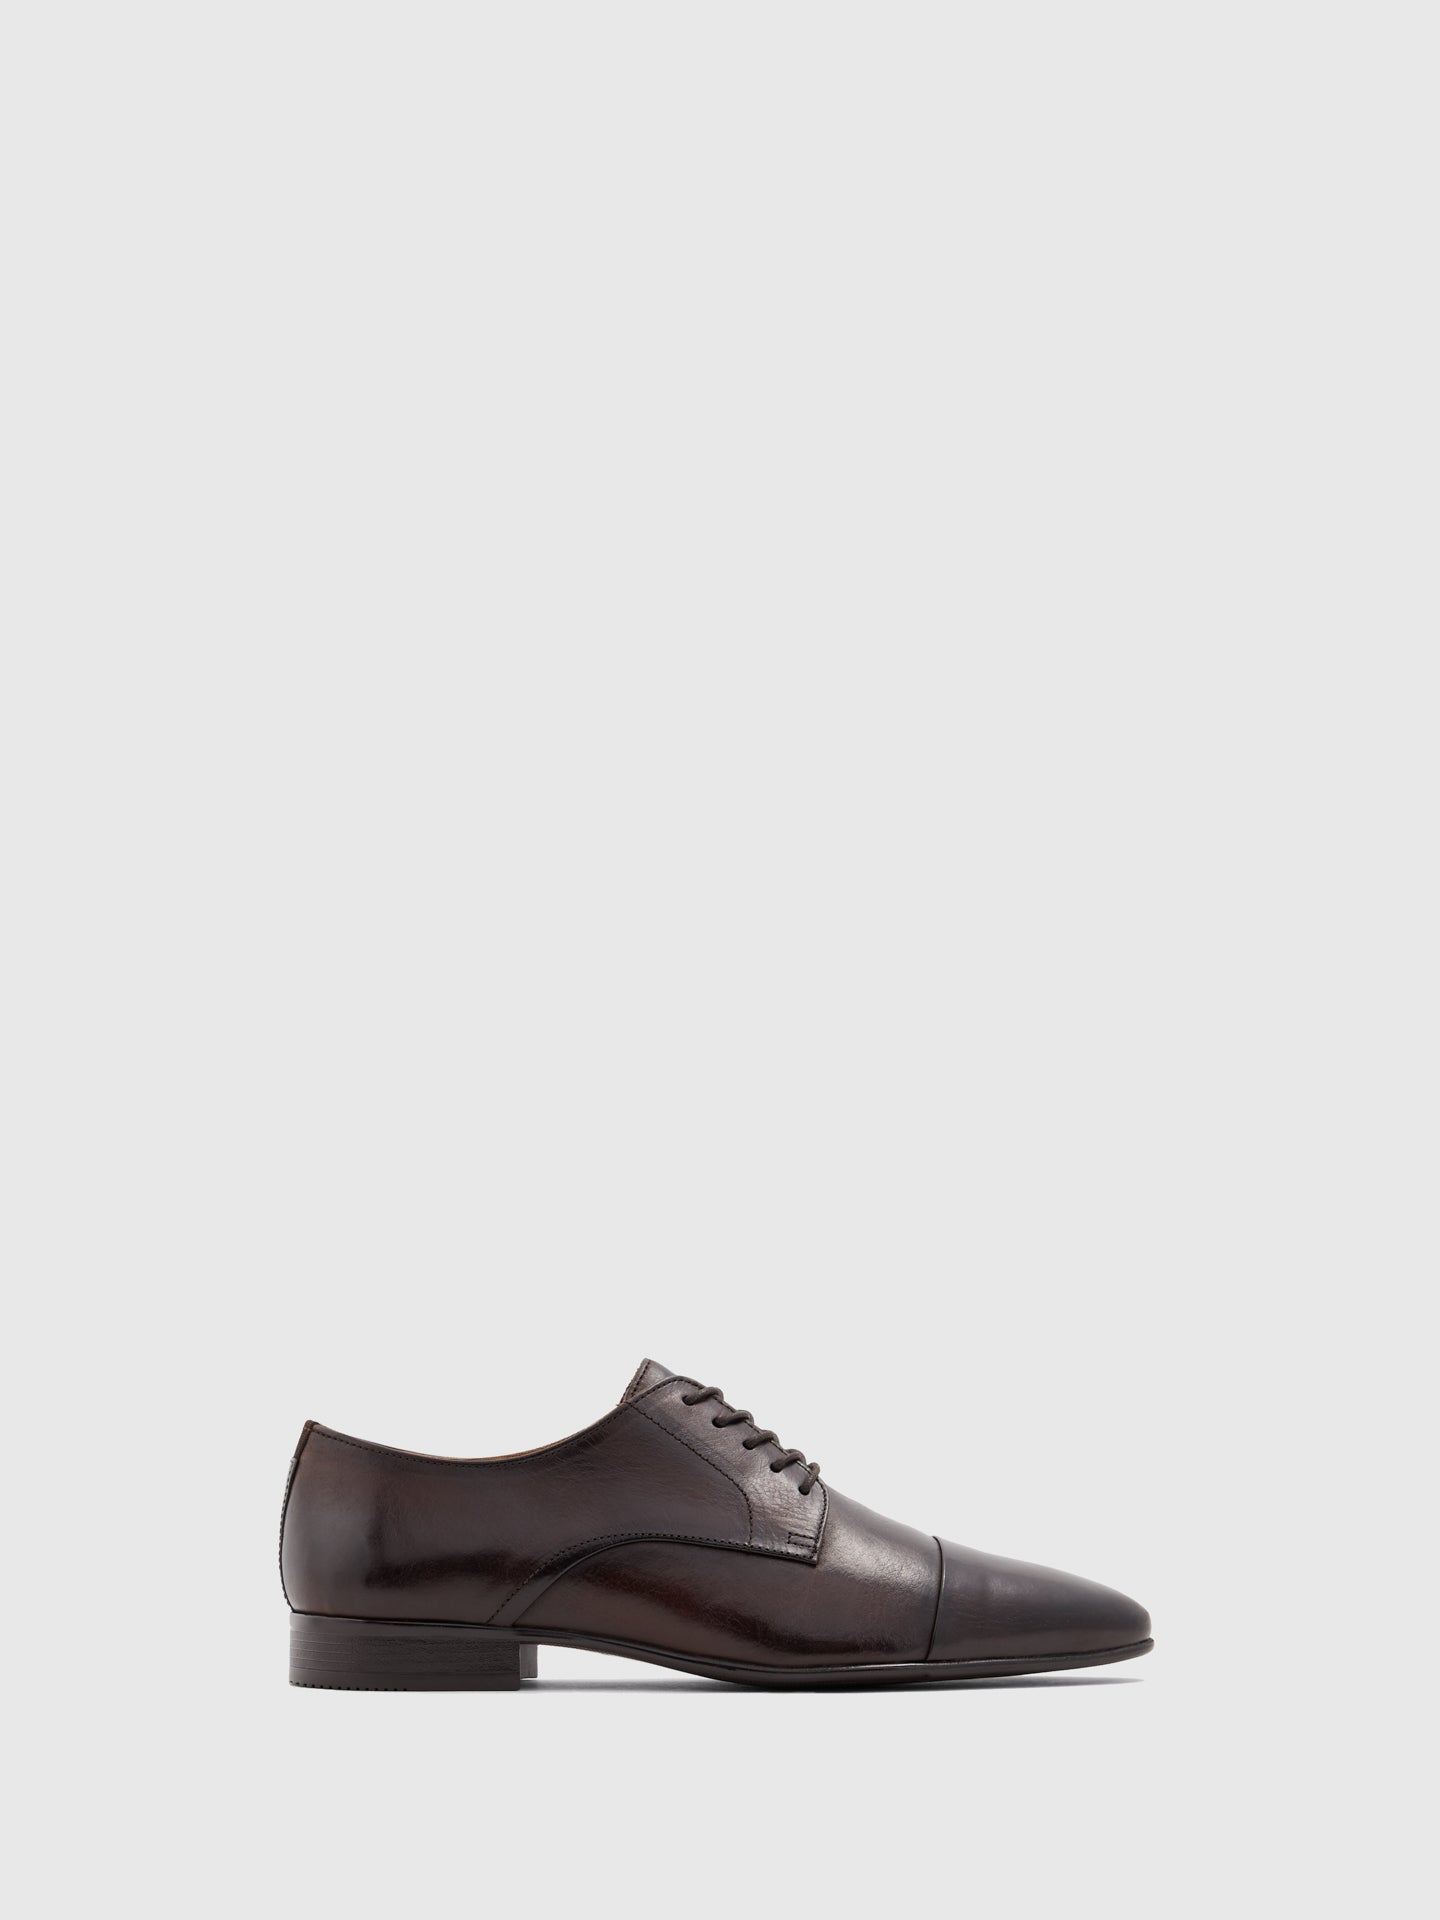 Aldo Brown Leather Lace-up Shoes